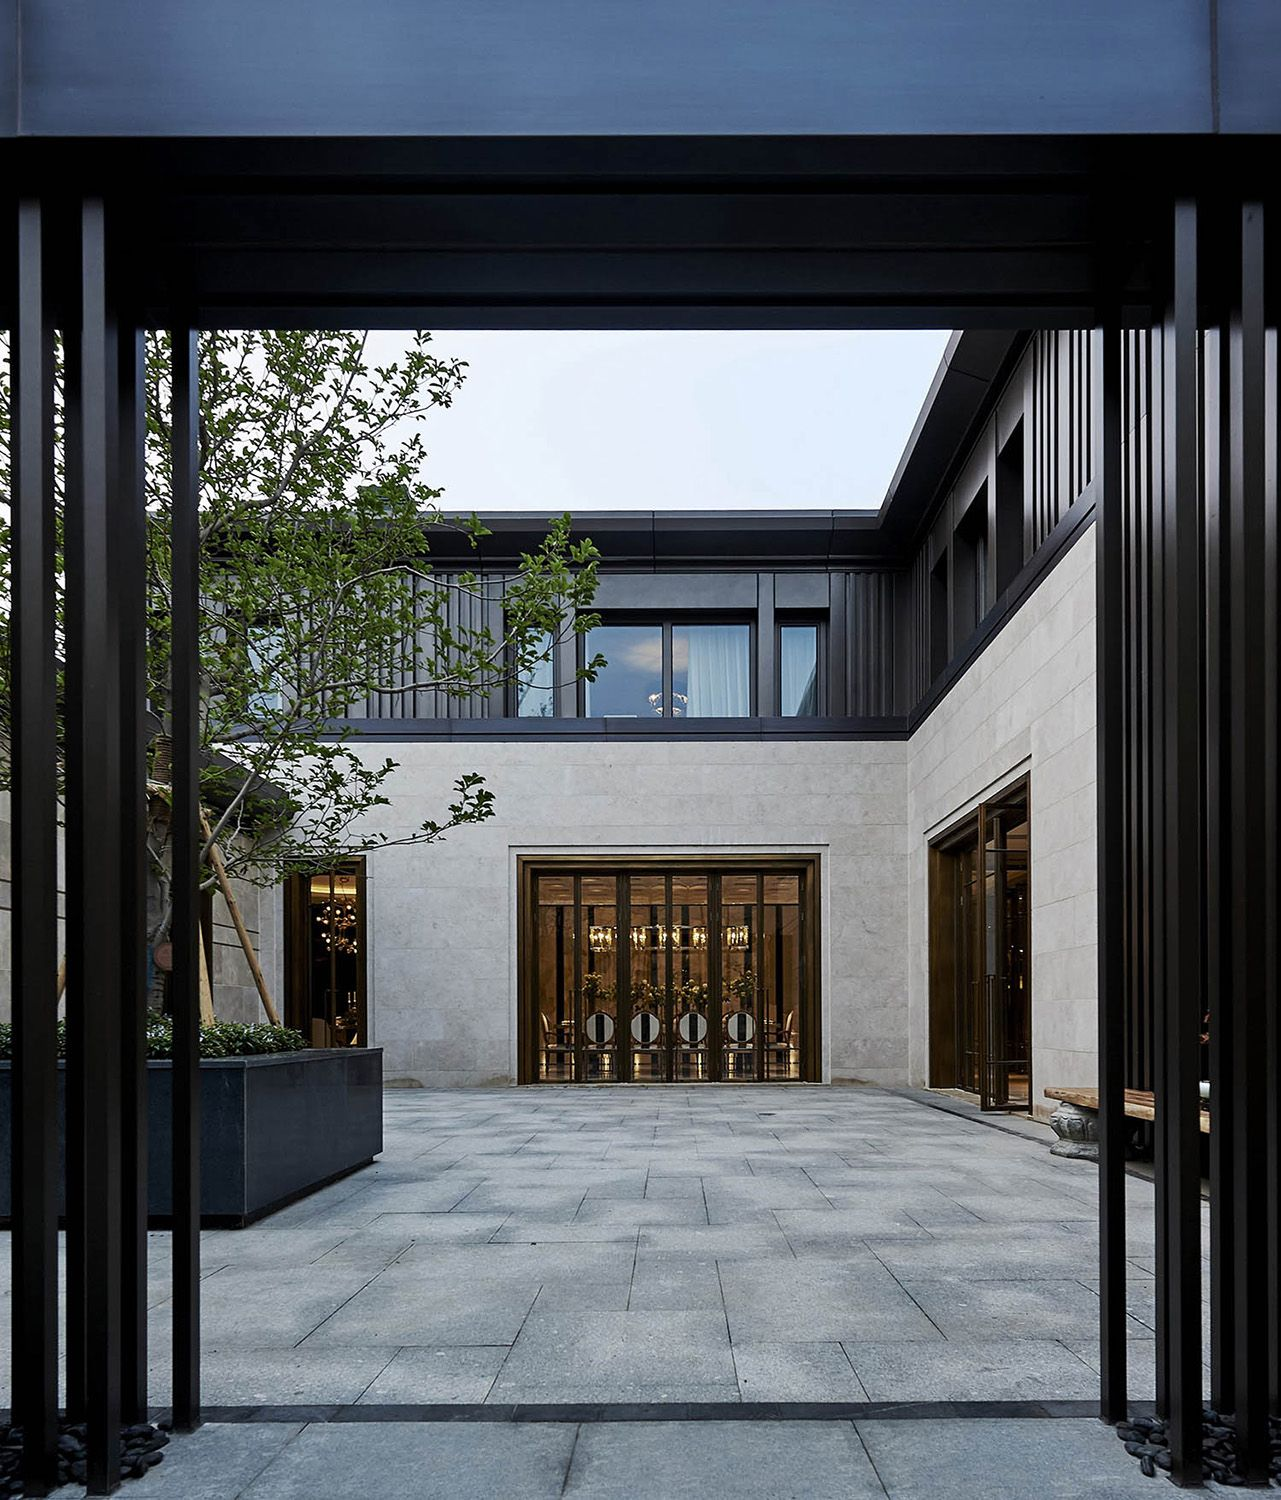 Cosco ruifu is a beijing house that embodies modern taste and traditional spirits design carries out its functional use and helps to